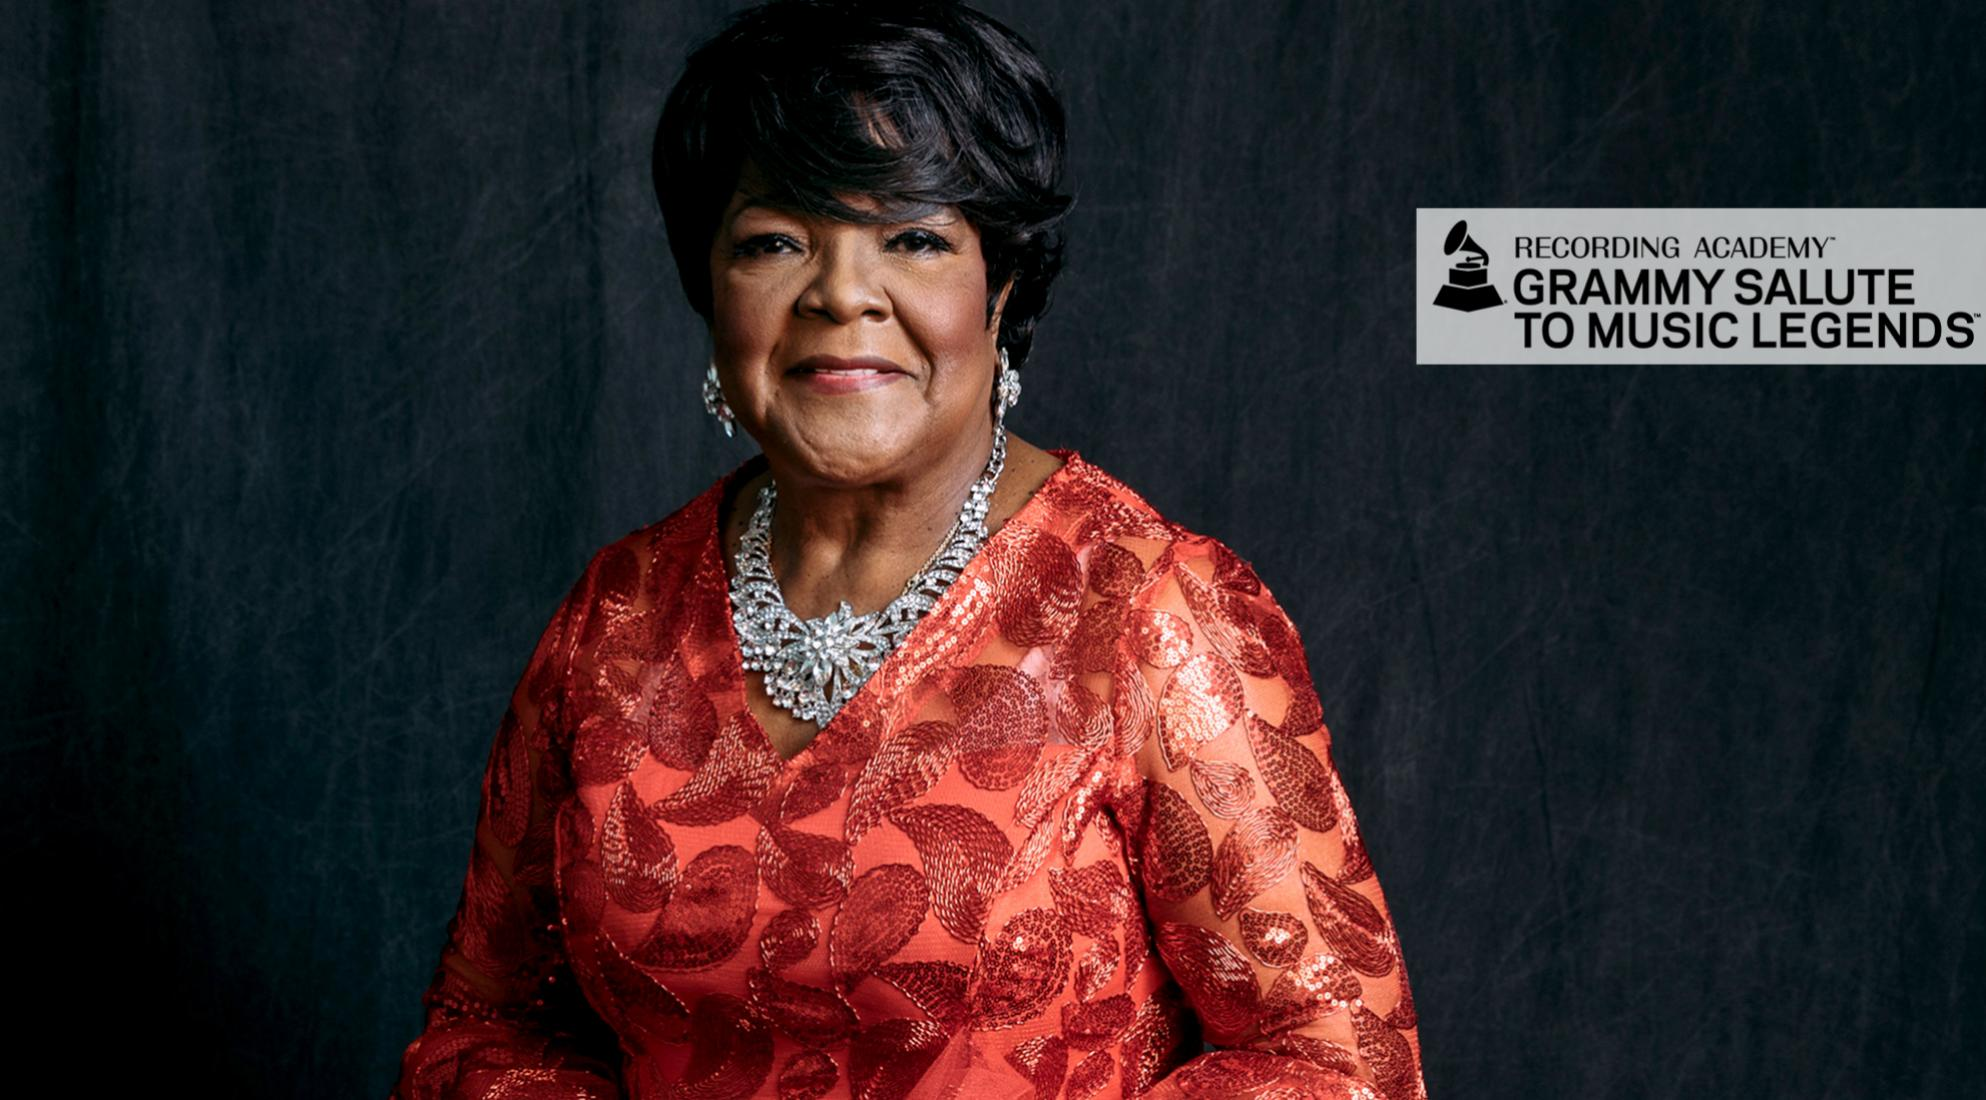 2017 Recording Academy Lifetime Achievement Award recipient Shirley Caesar